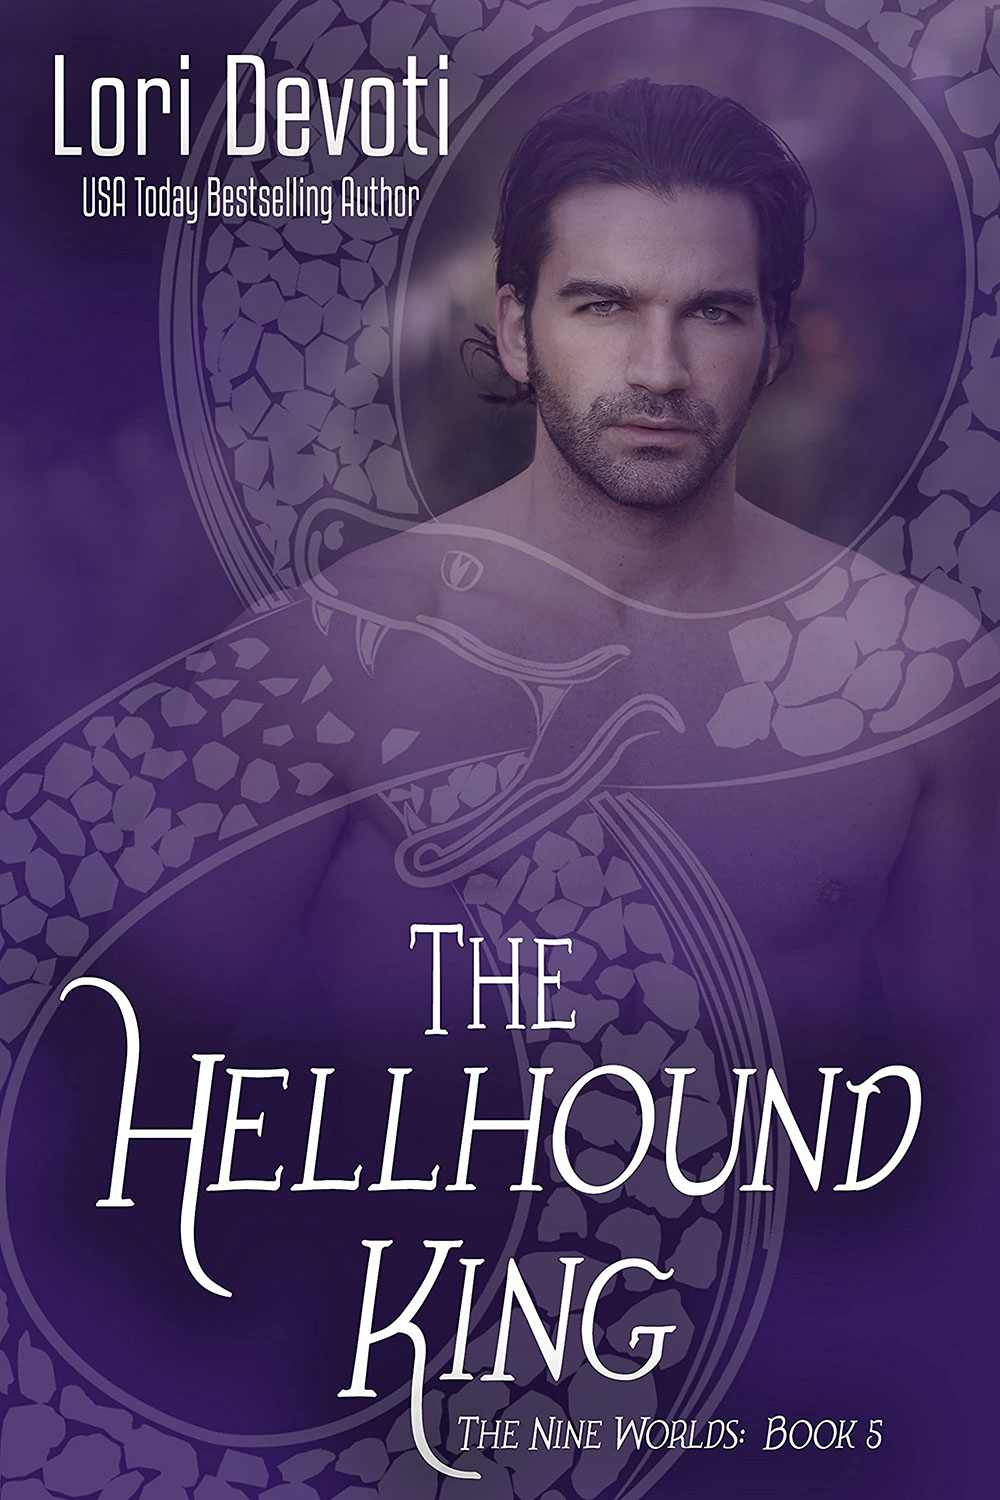 The Hellhound King